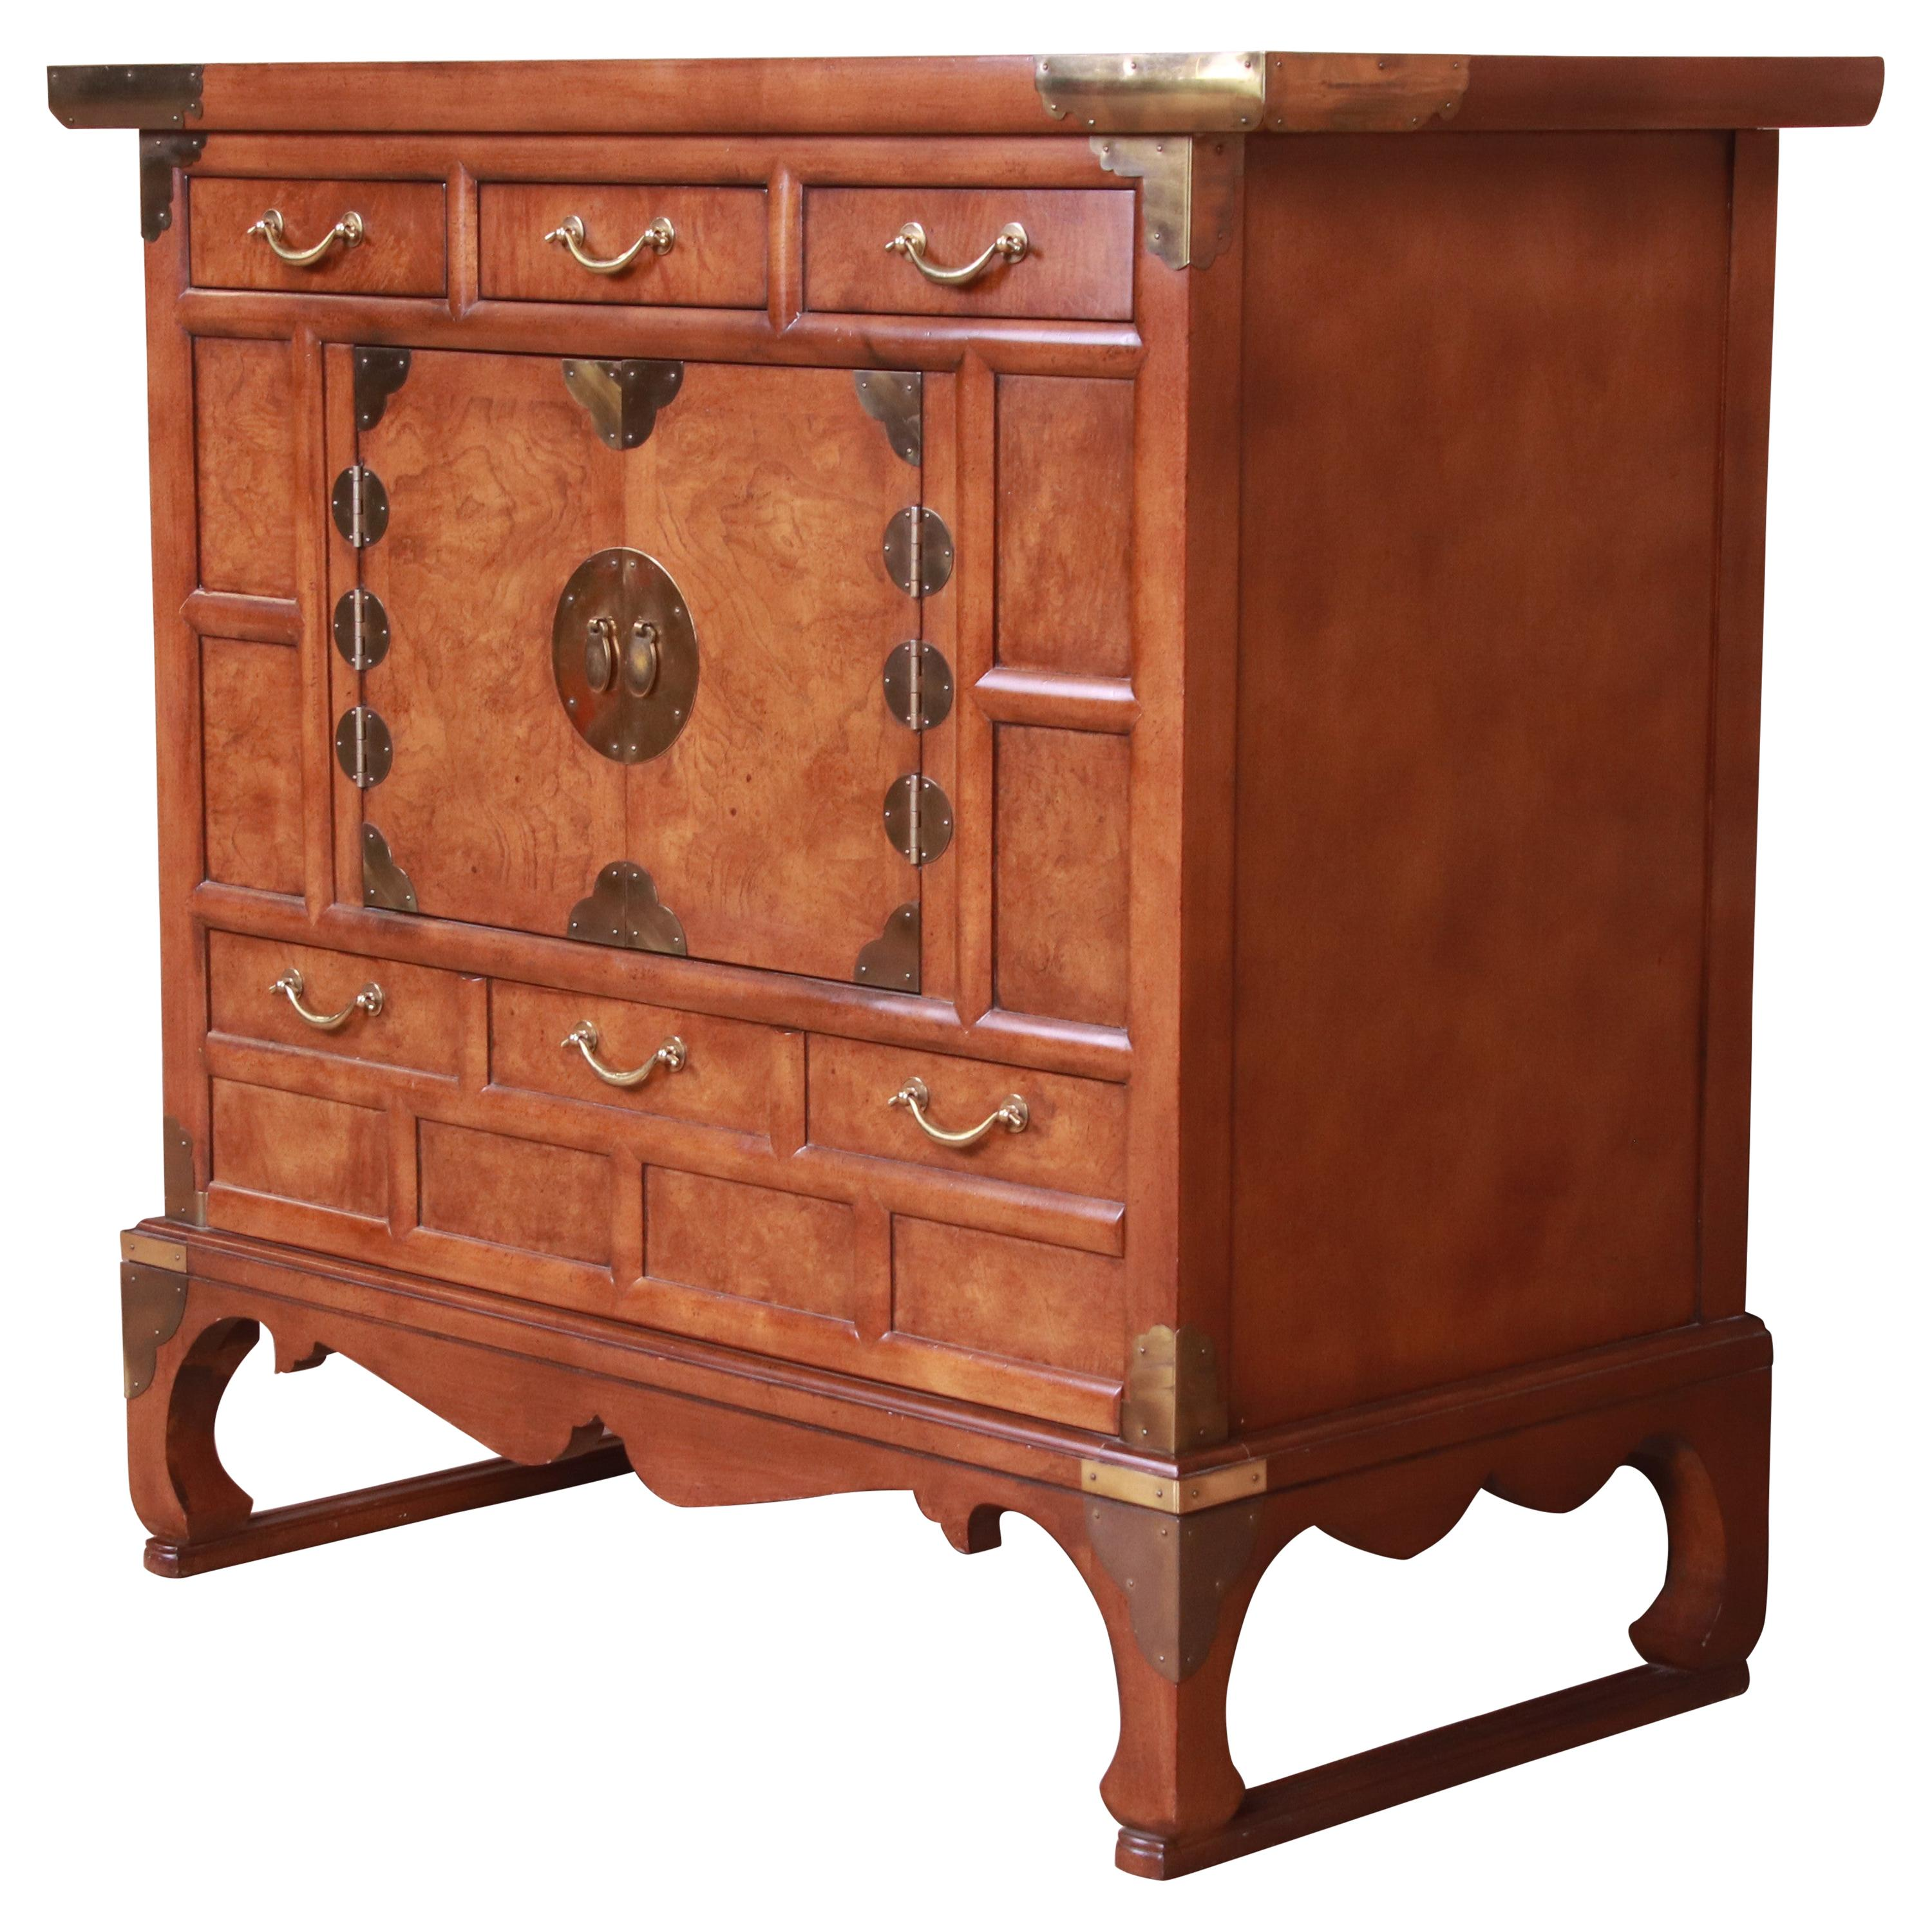 Baker Furniture Chinoiserie Burl Wood Commode or Bar Cabinet, Circa 1960s